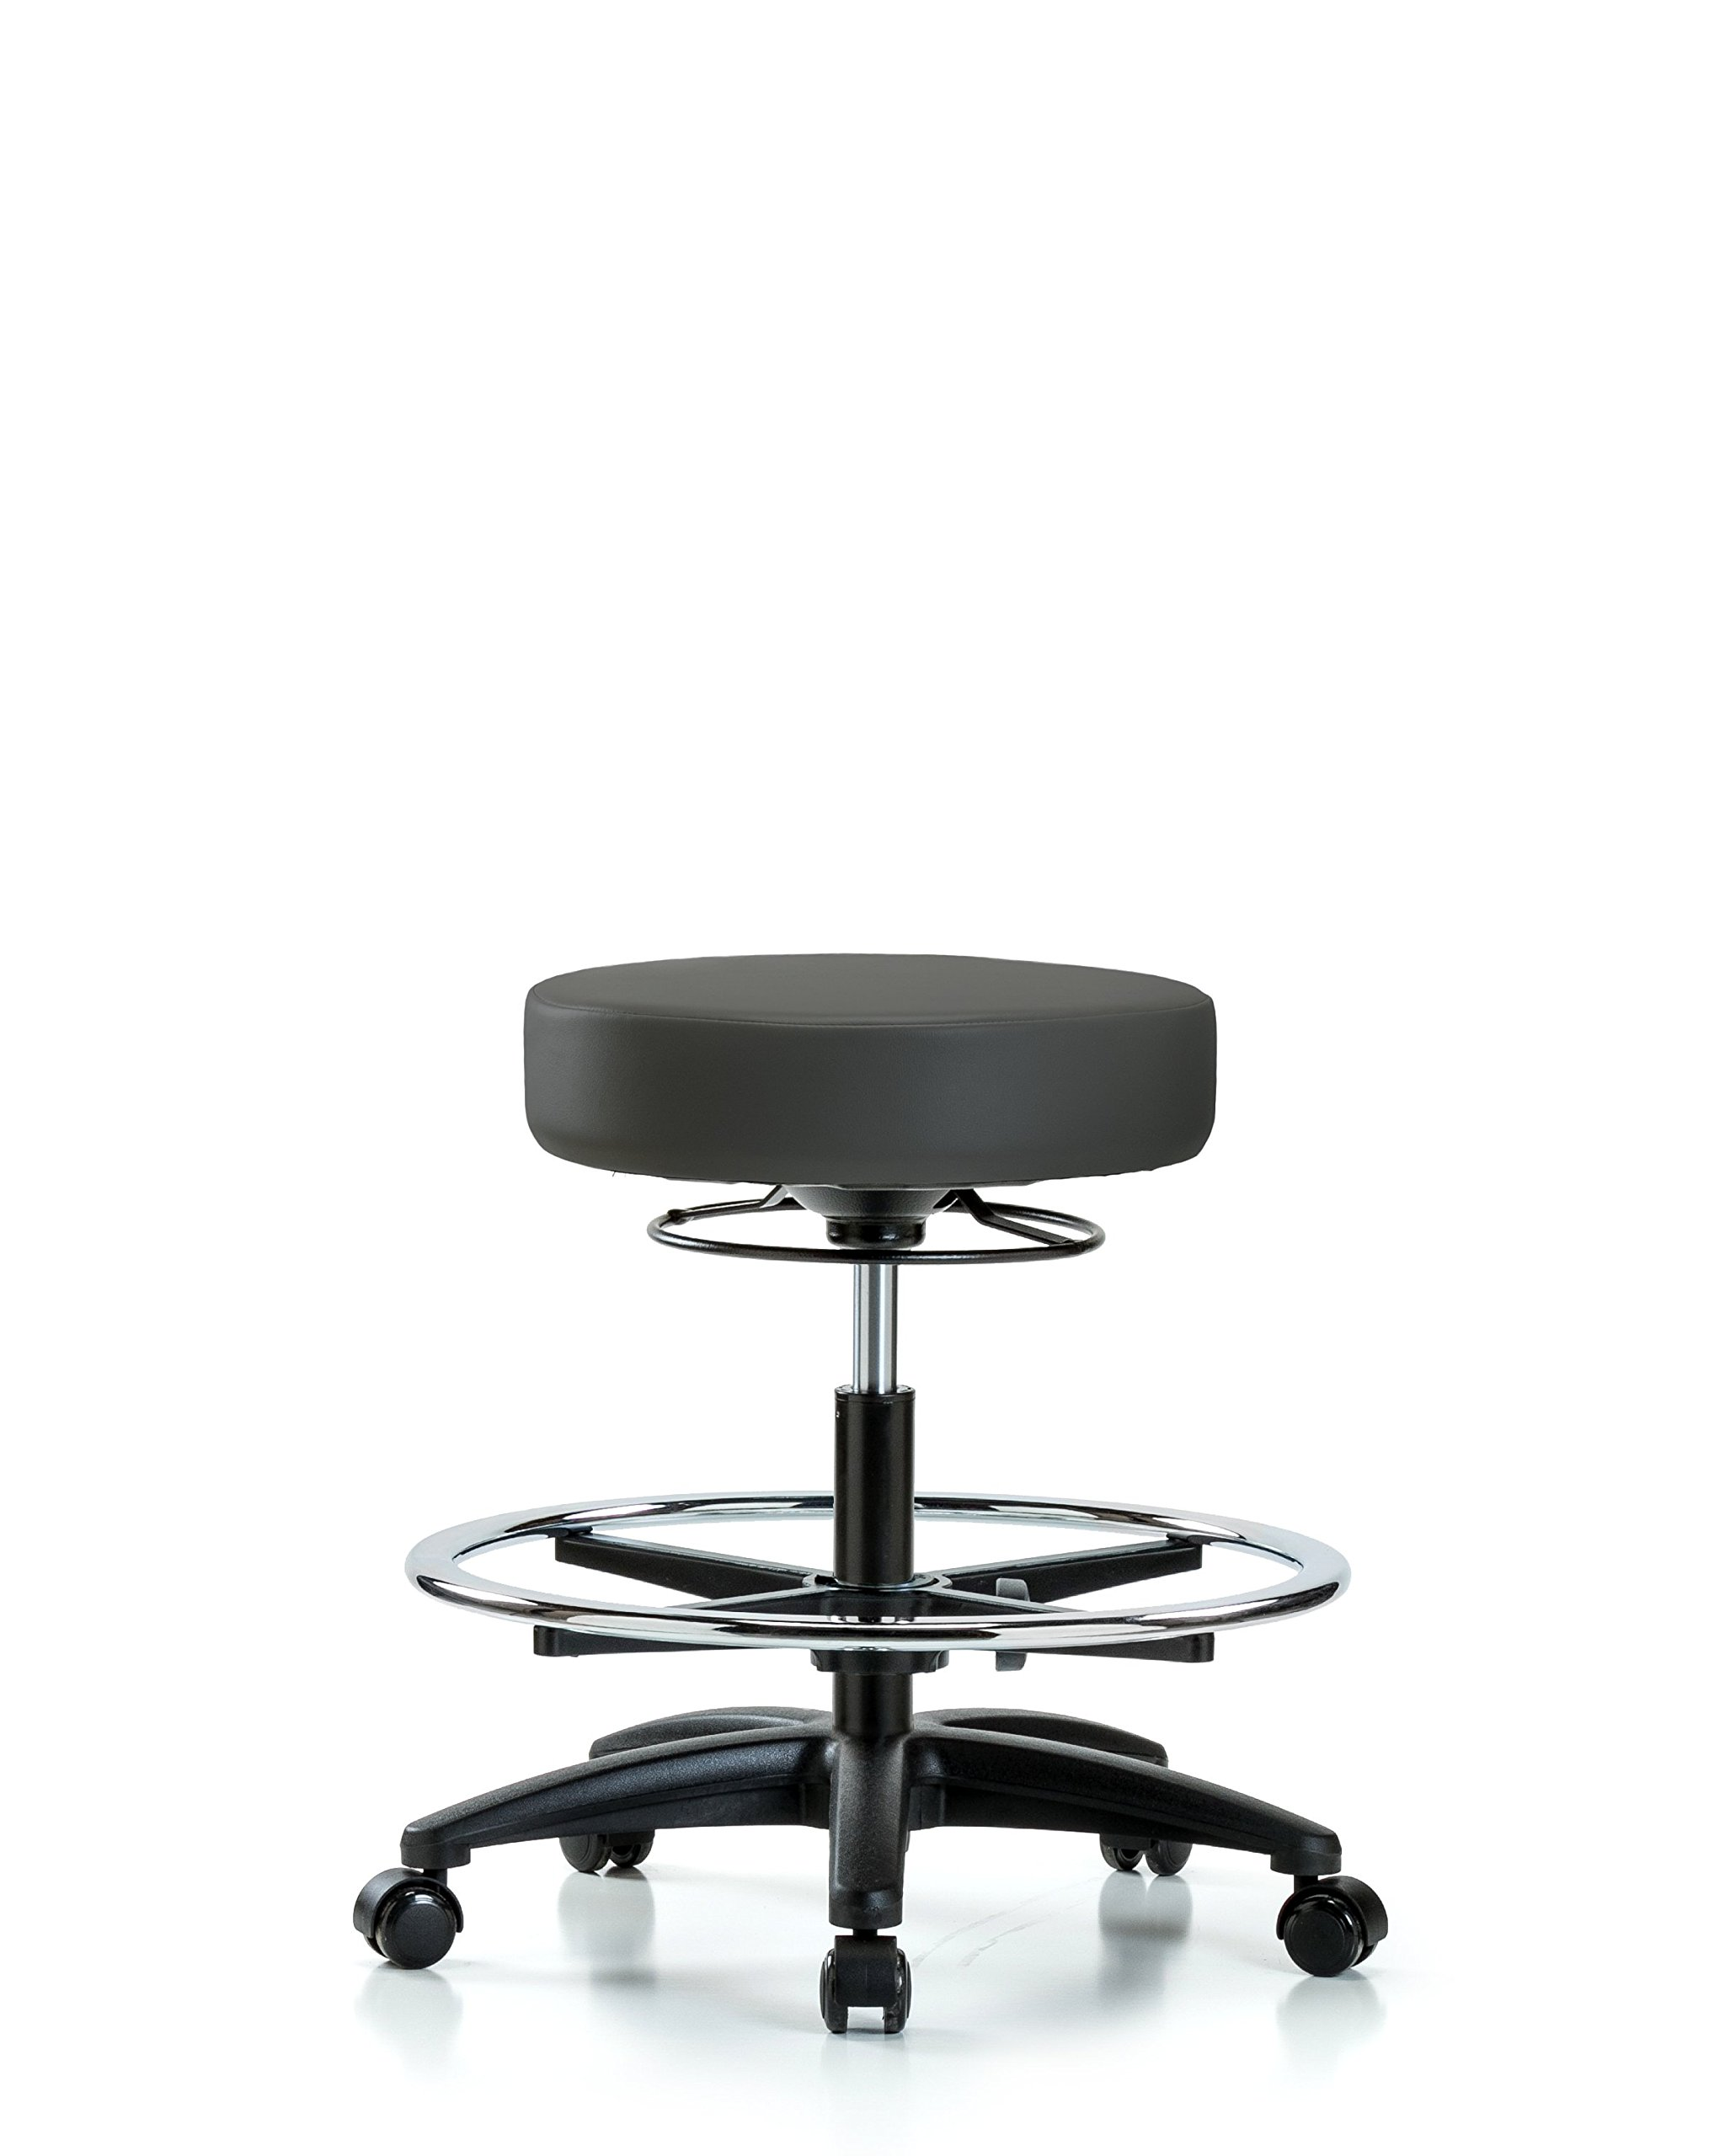 Adjustable Stool for Exam Rooms, Labs, and Dentists with Wheels and Foot Ring - Bench Height, Charcoal